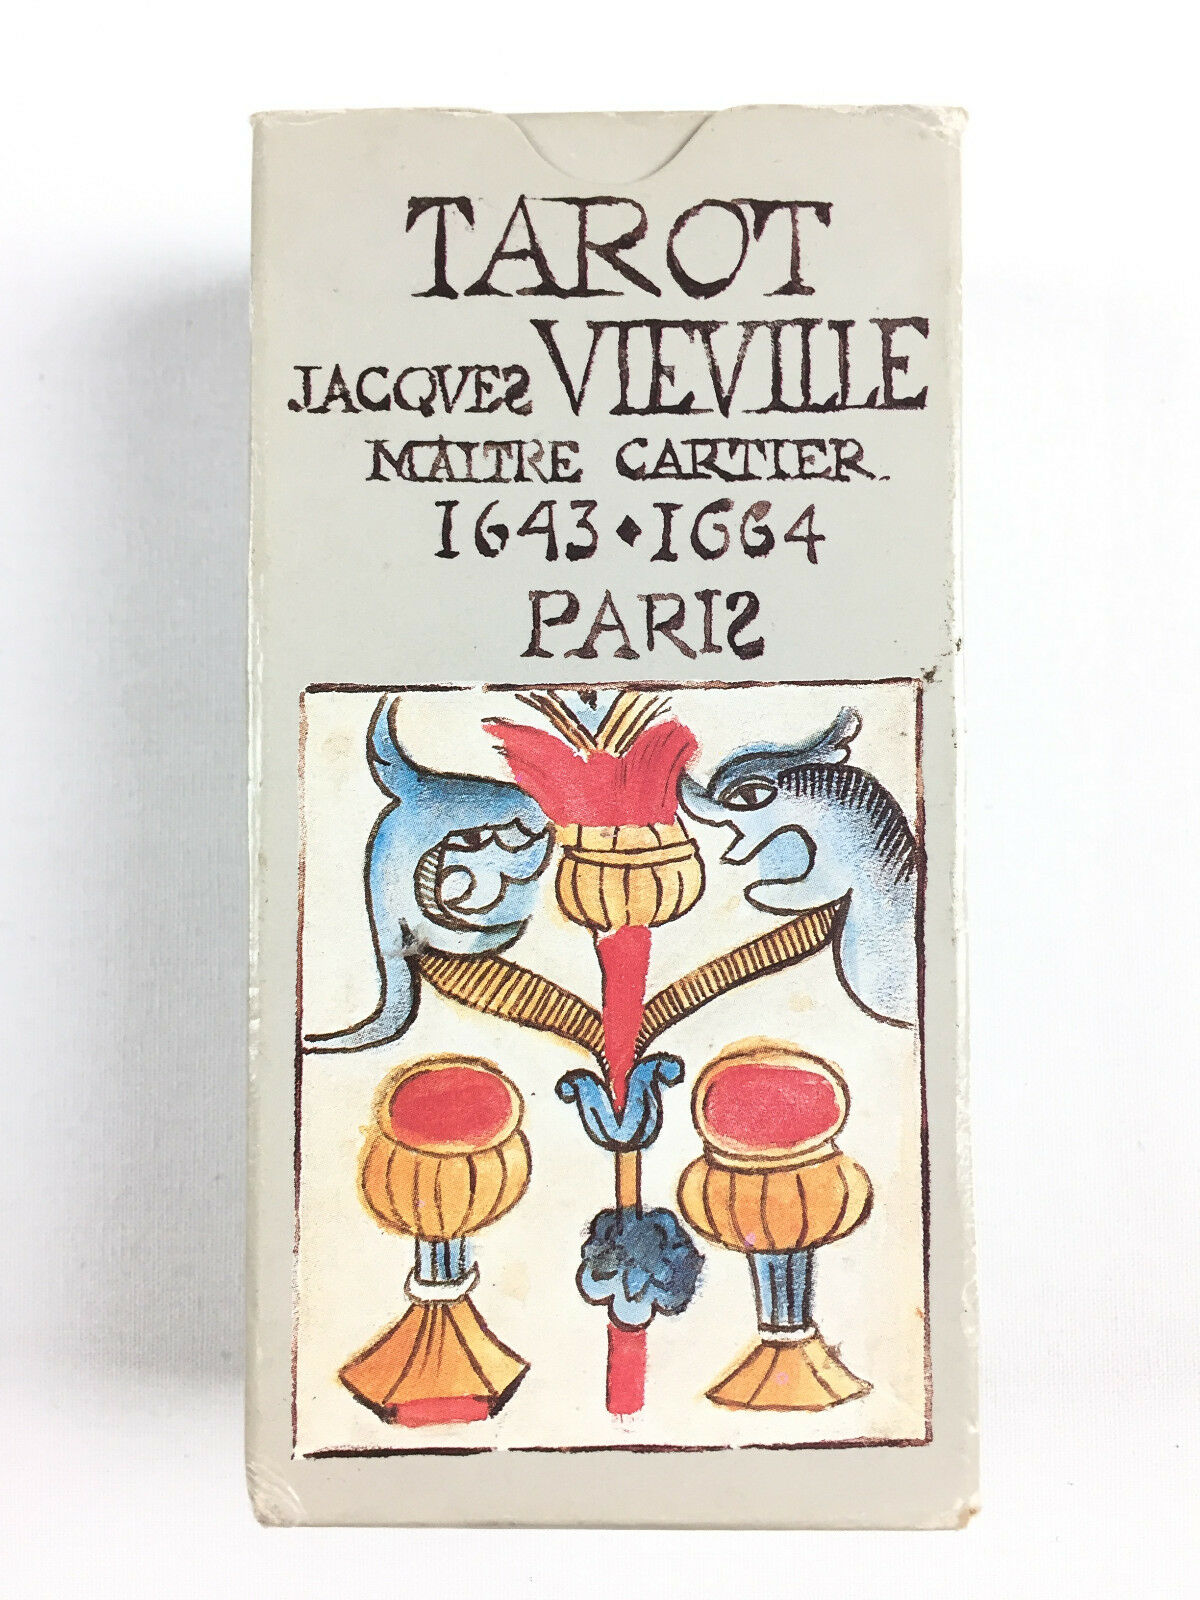 Game of tared jacques vieville maitre cartier 1643 1664 repro heron boechat